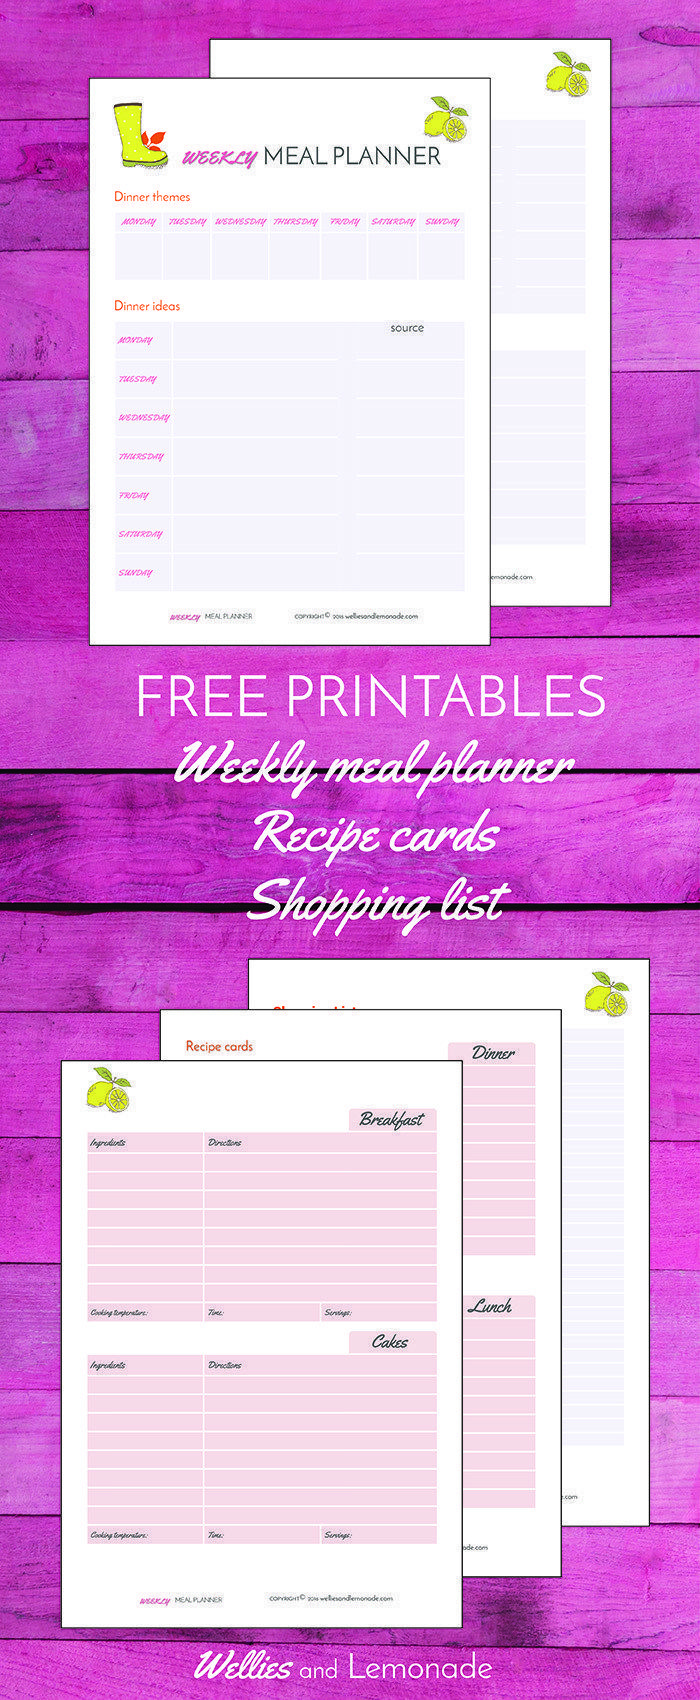 meal planner free printable life in yellow